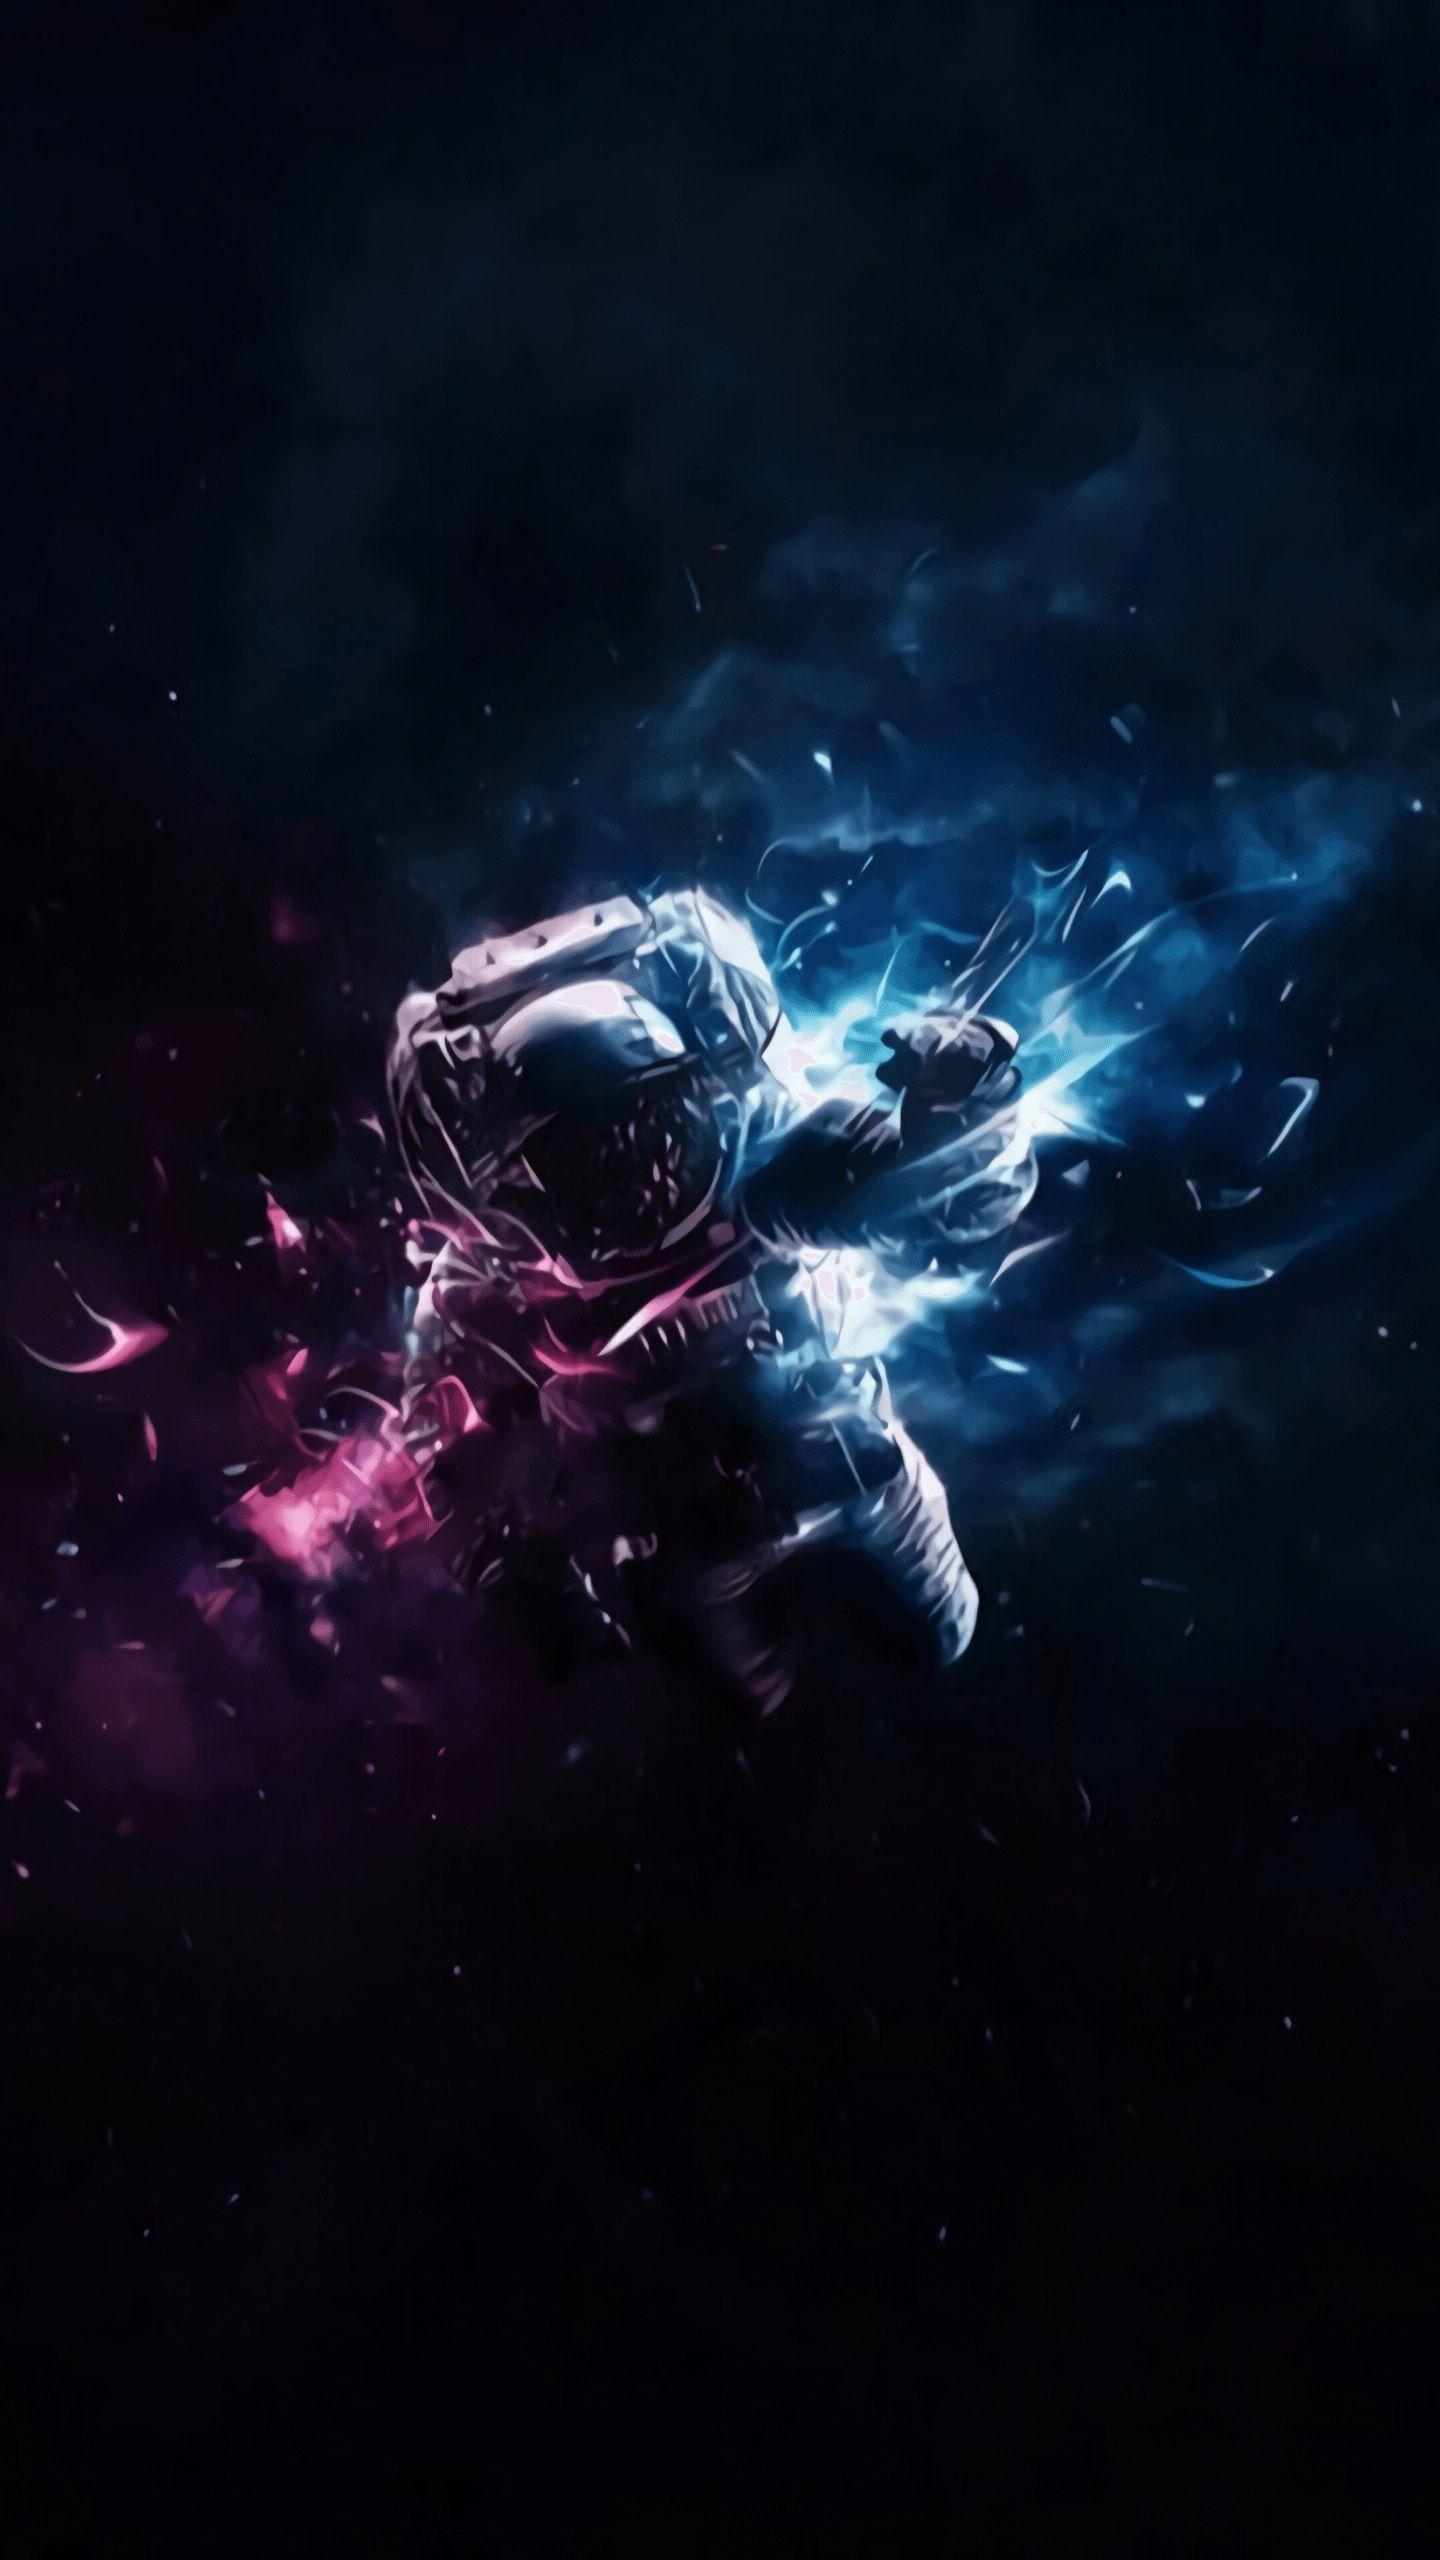 6000+ Wallpaper Android Astronaut Hd HD